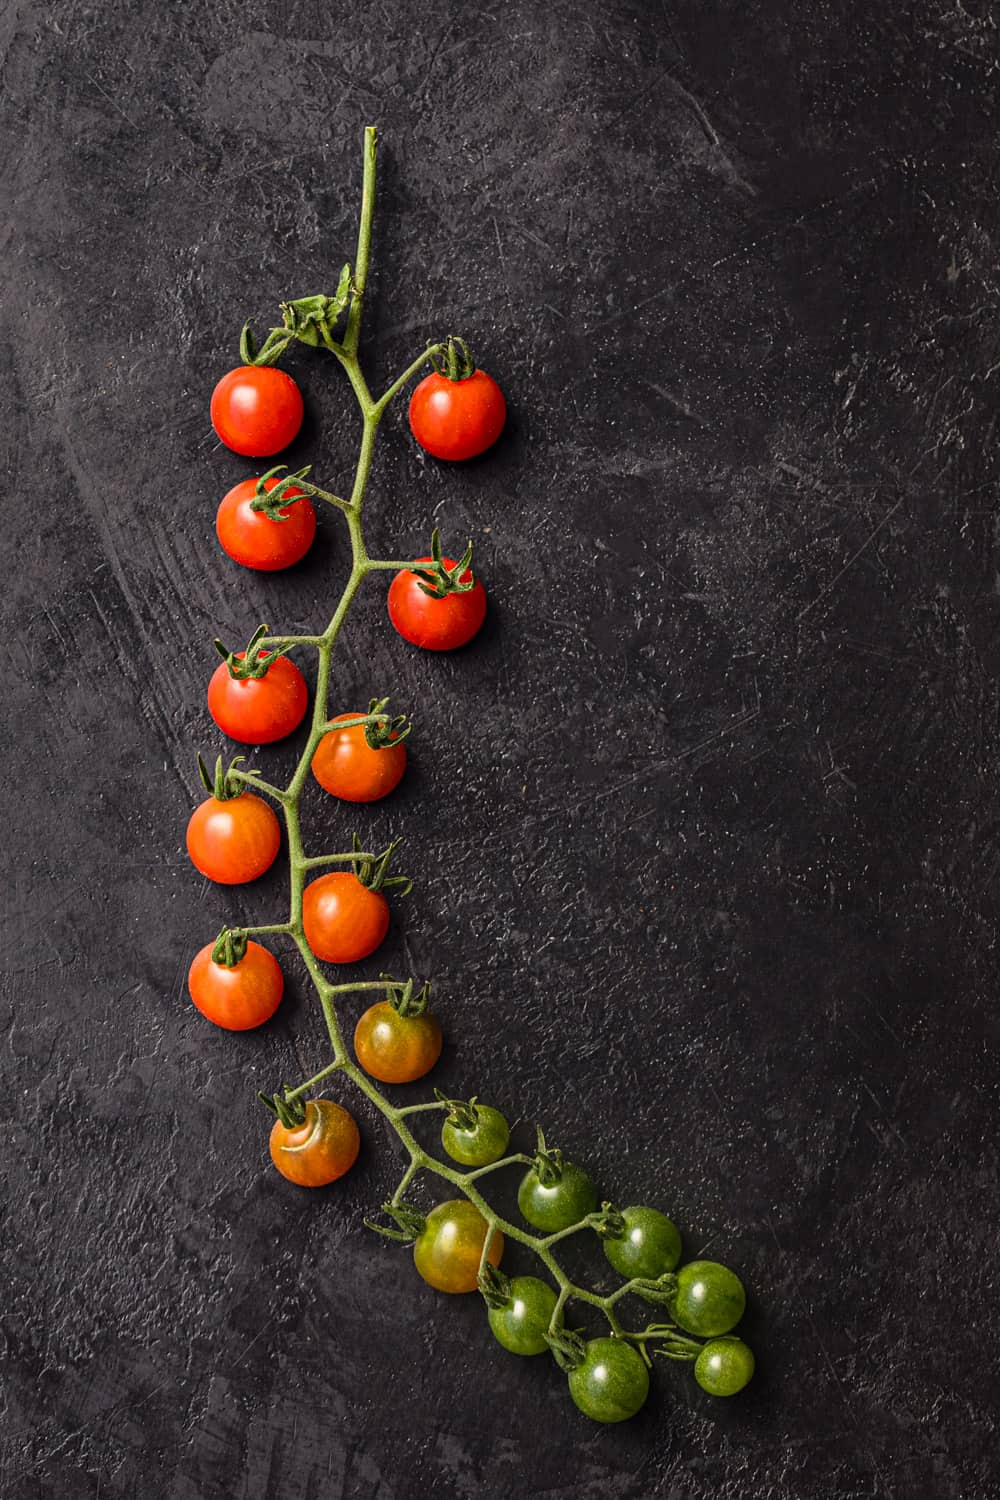 A vine with heirloom cherry tomatoes in different colors! The tomatoes colors range from Red to green.